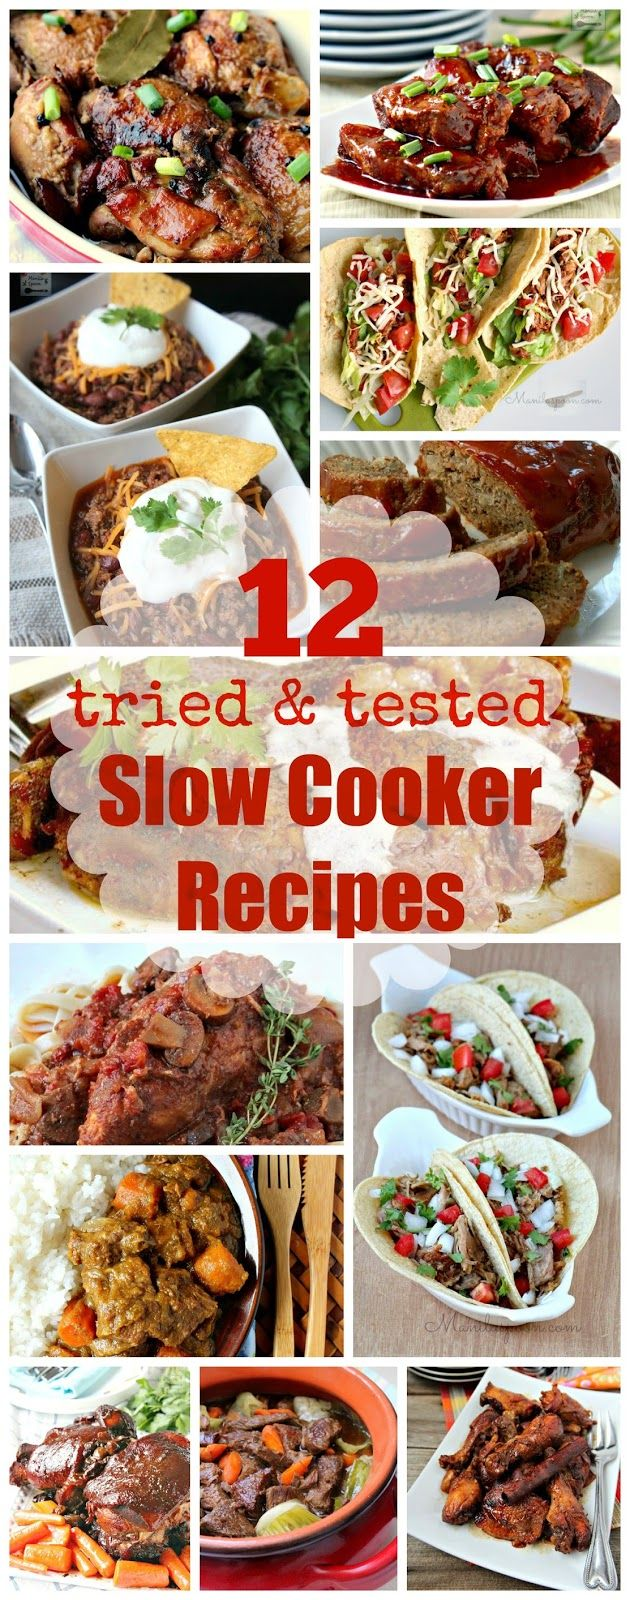 Over the years our family have enjoyed these 12 tried and tested, easy and delicious slow cooker dishes. We hope you all enjoy them, too! | manilaspoon.com